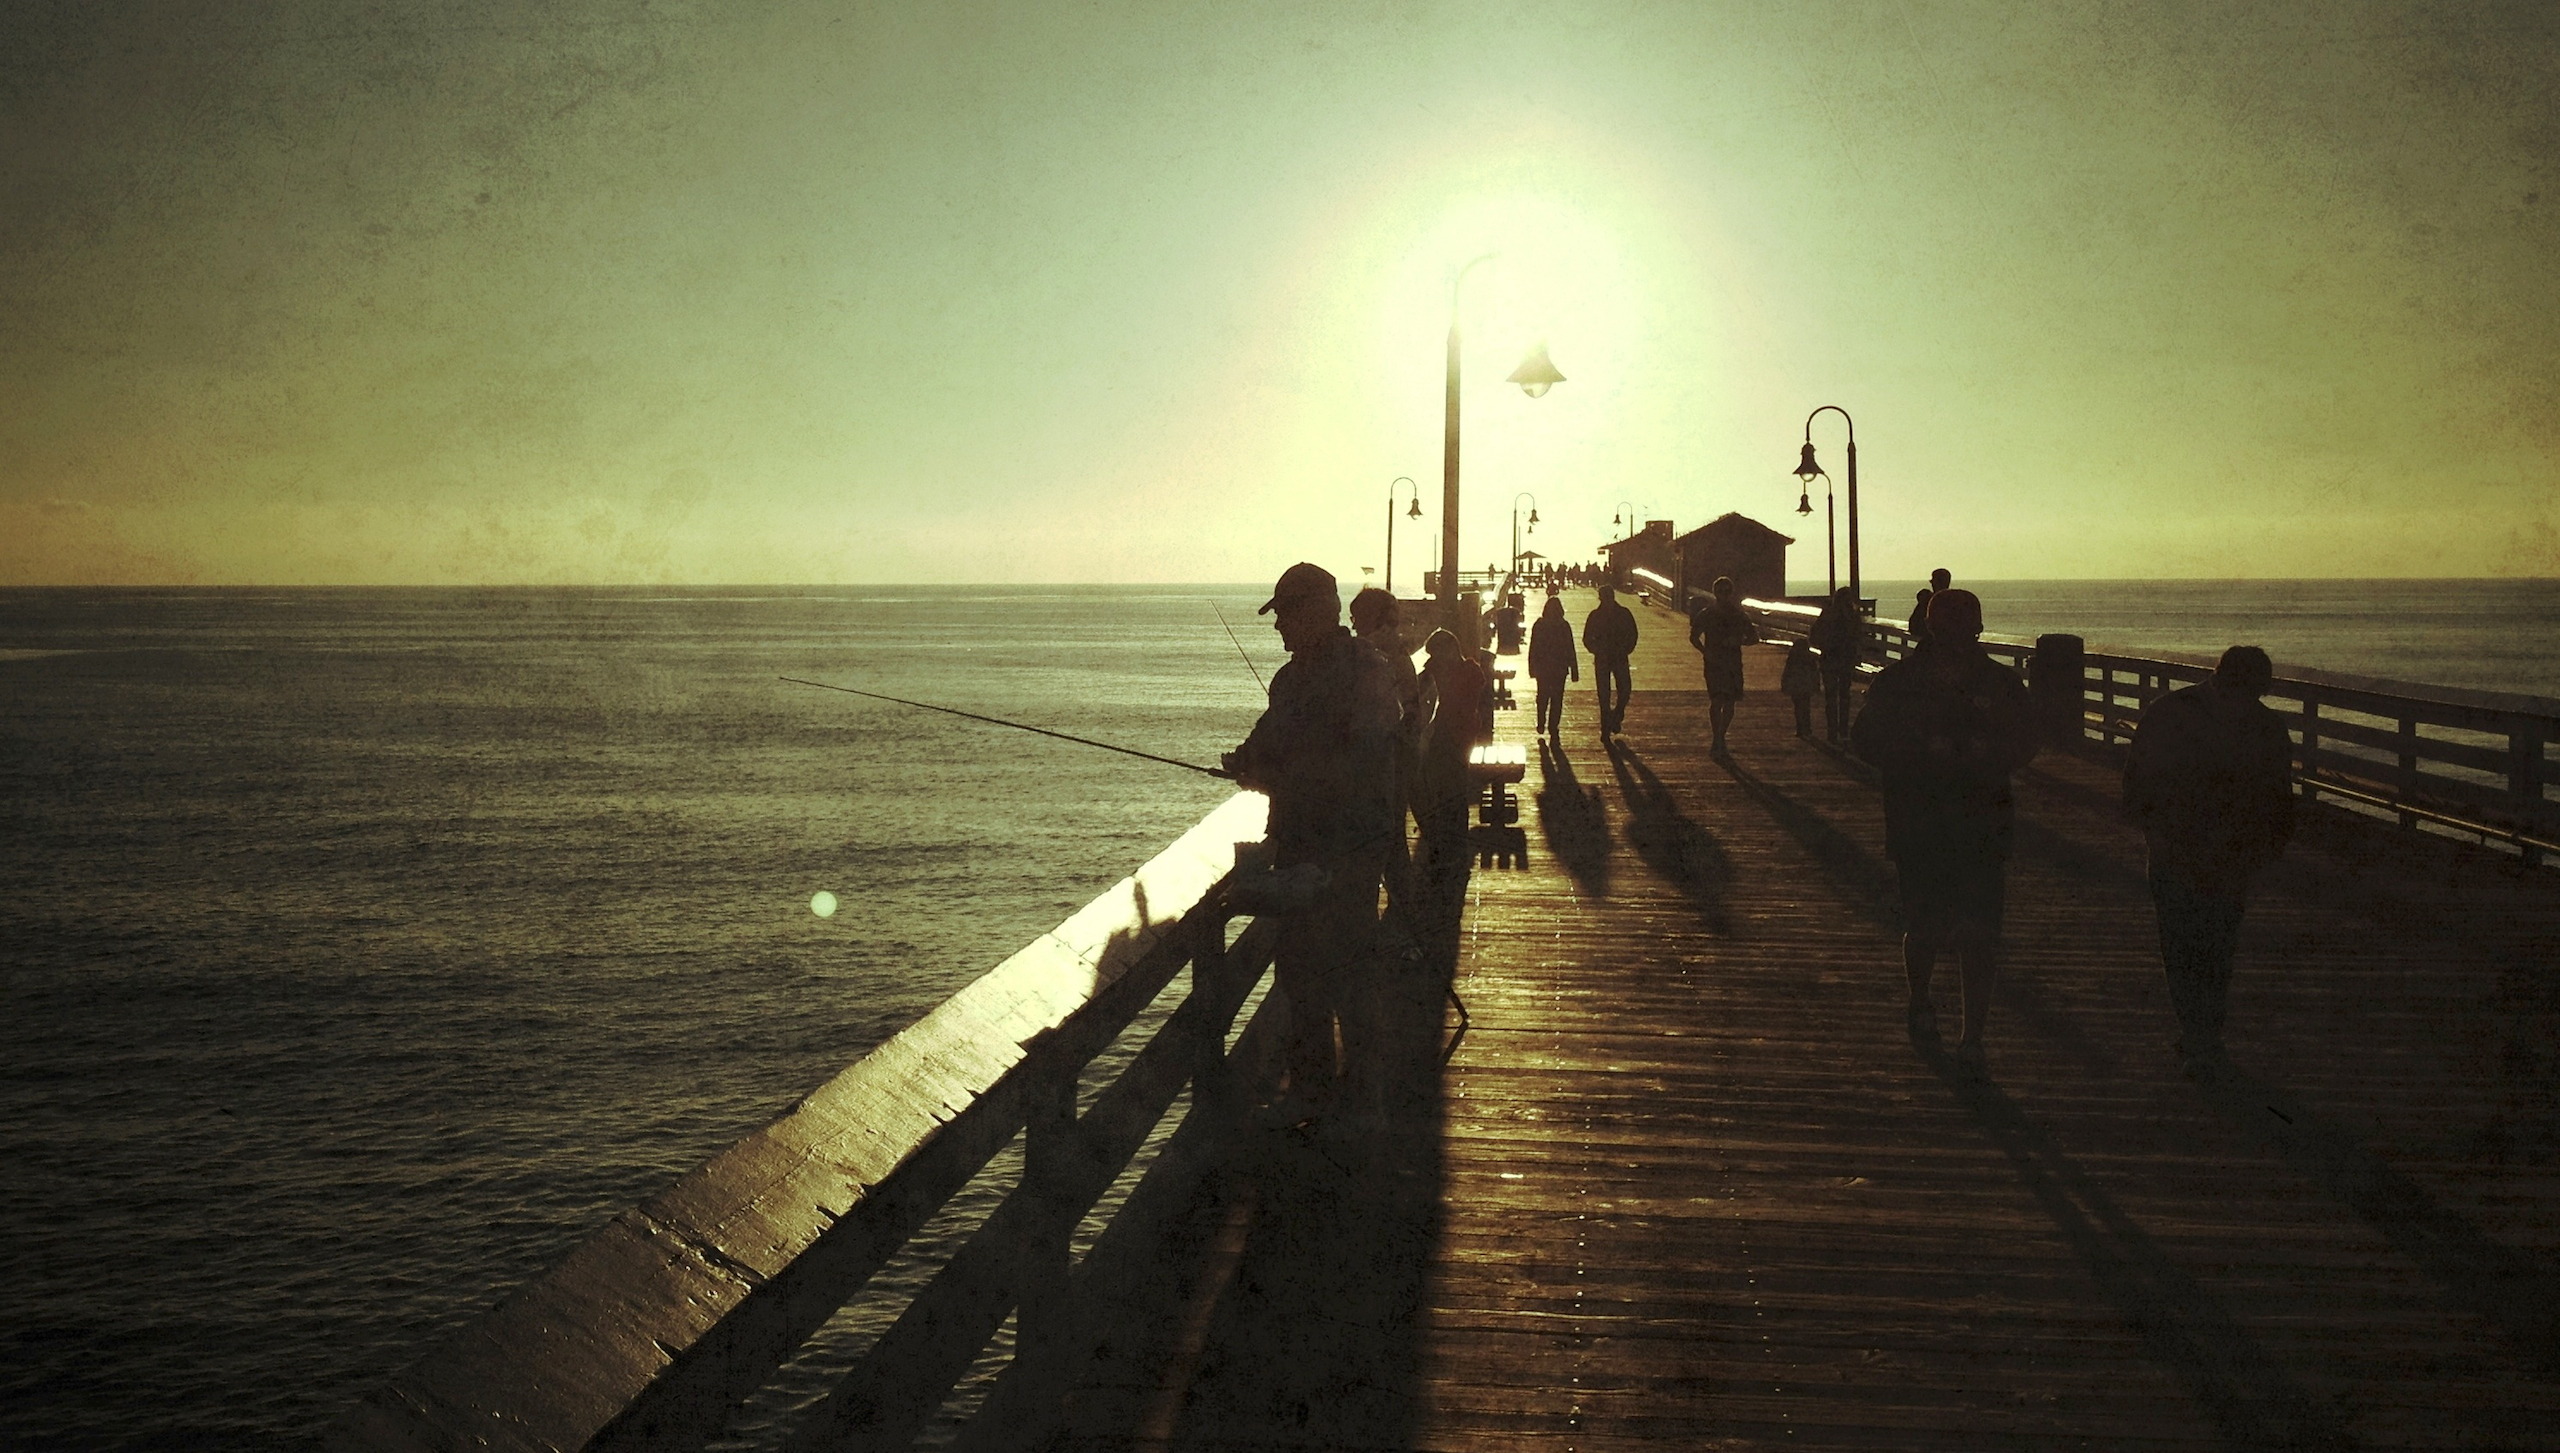 Oceanside Ca. boardwalk at sunset